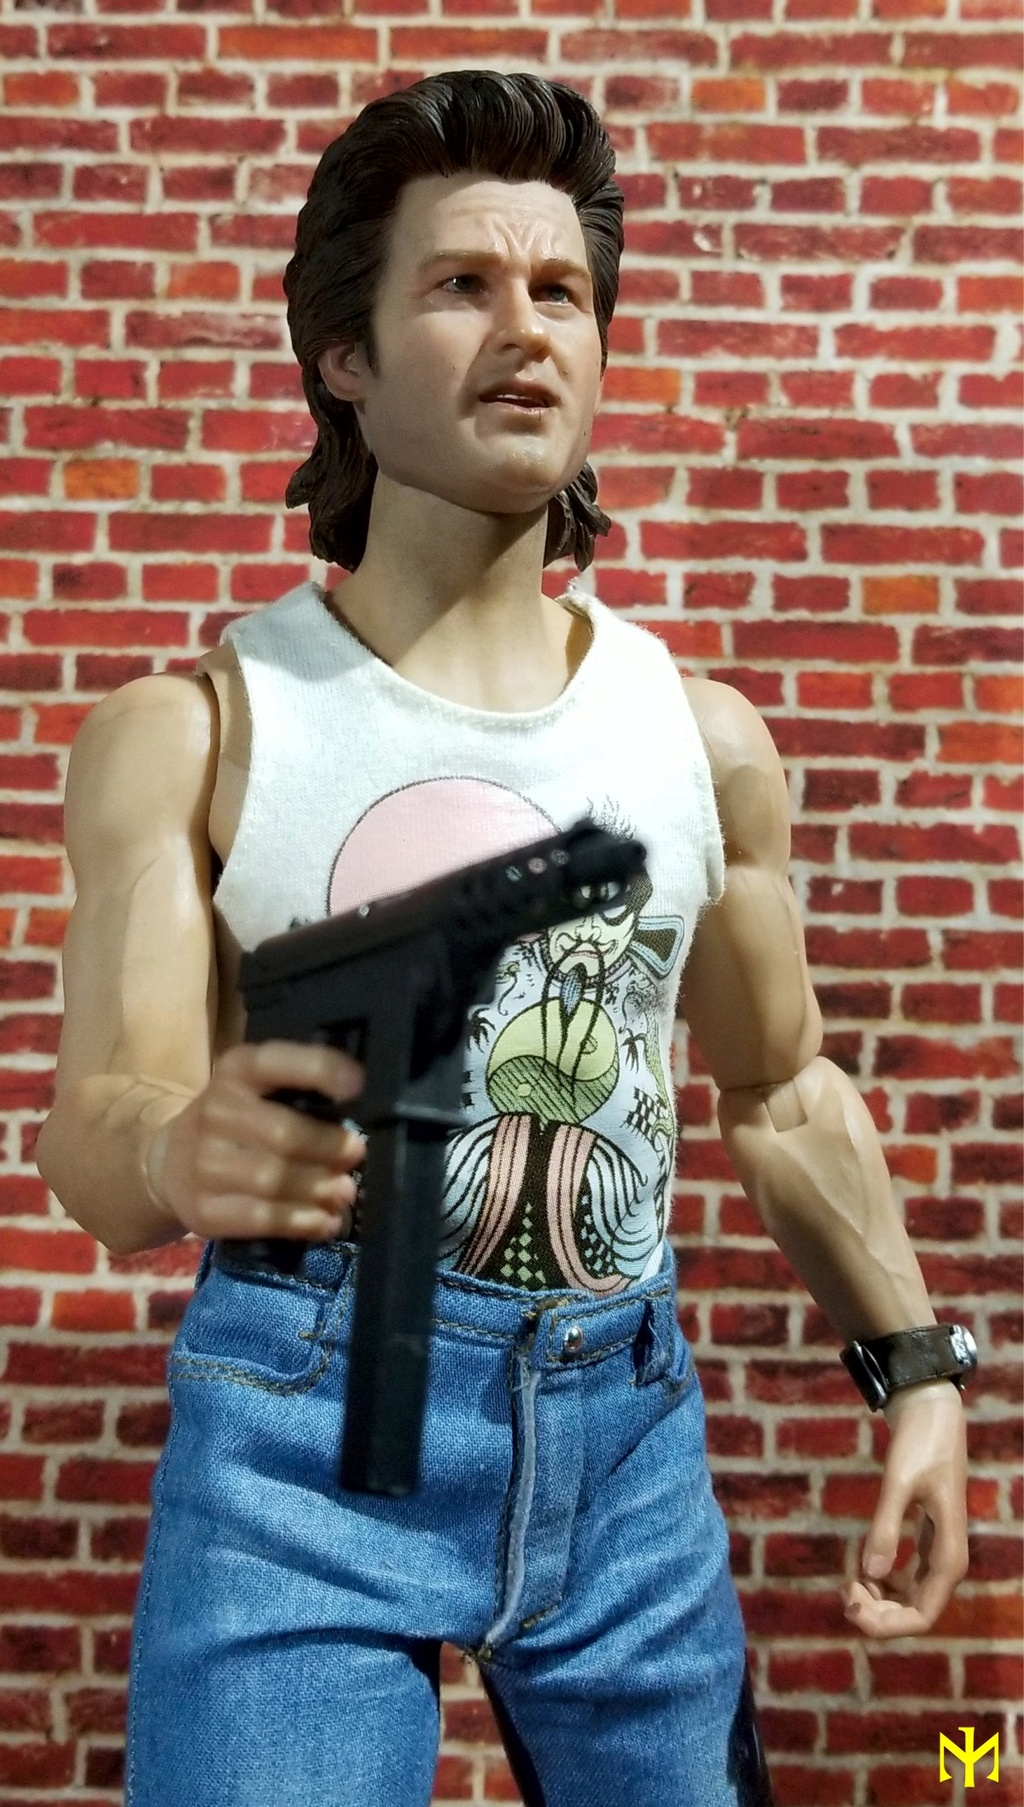 productreview - Sideshow Jack Burton Detailed Review Sscjb110